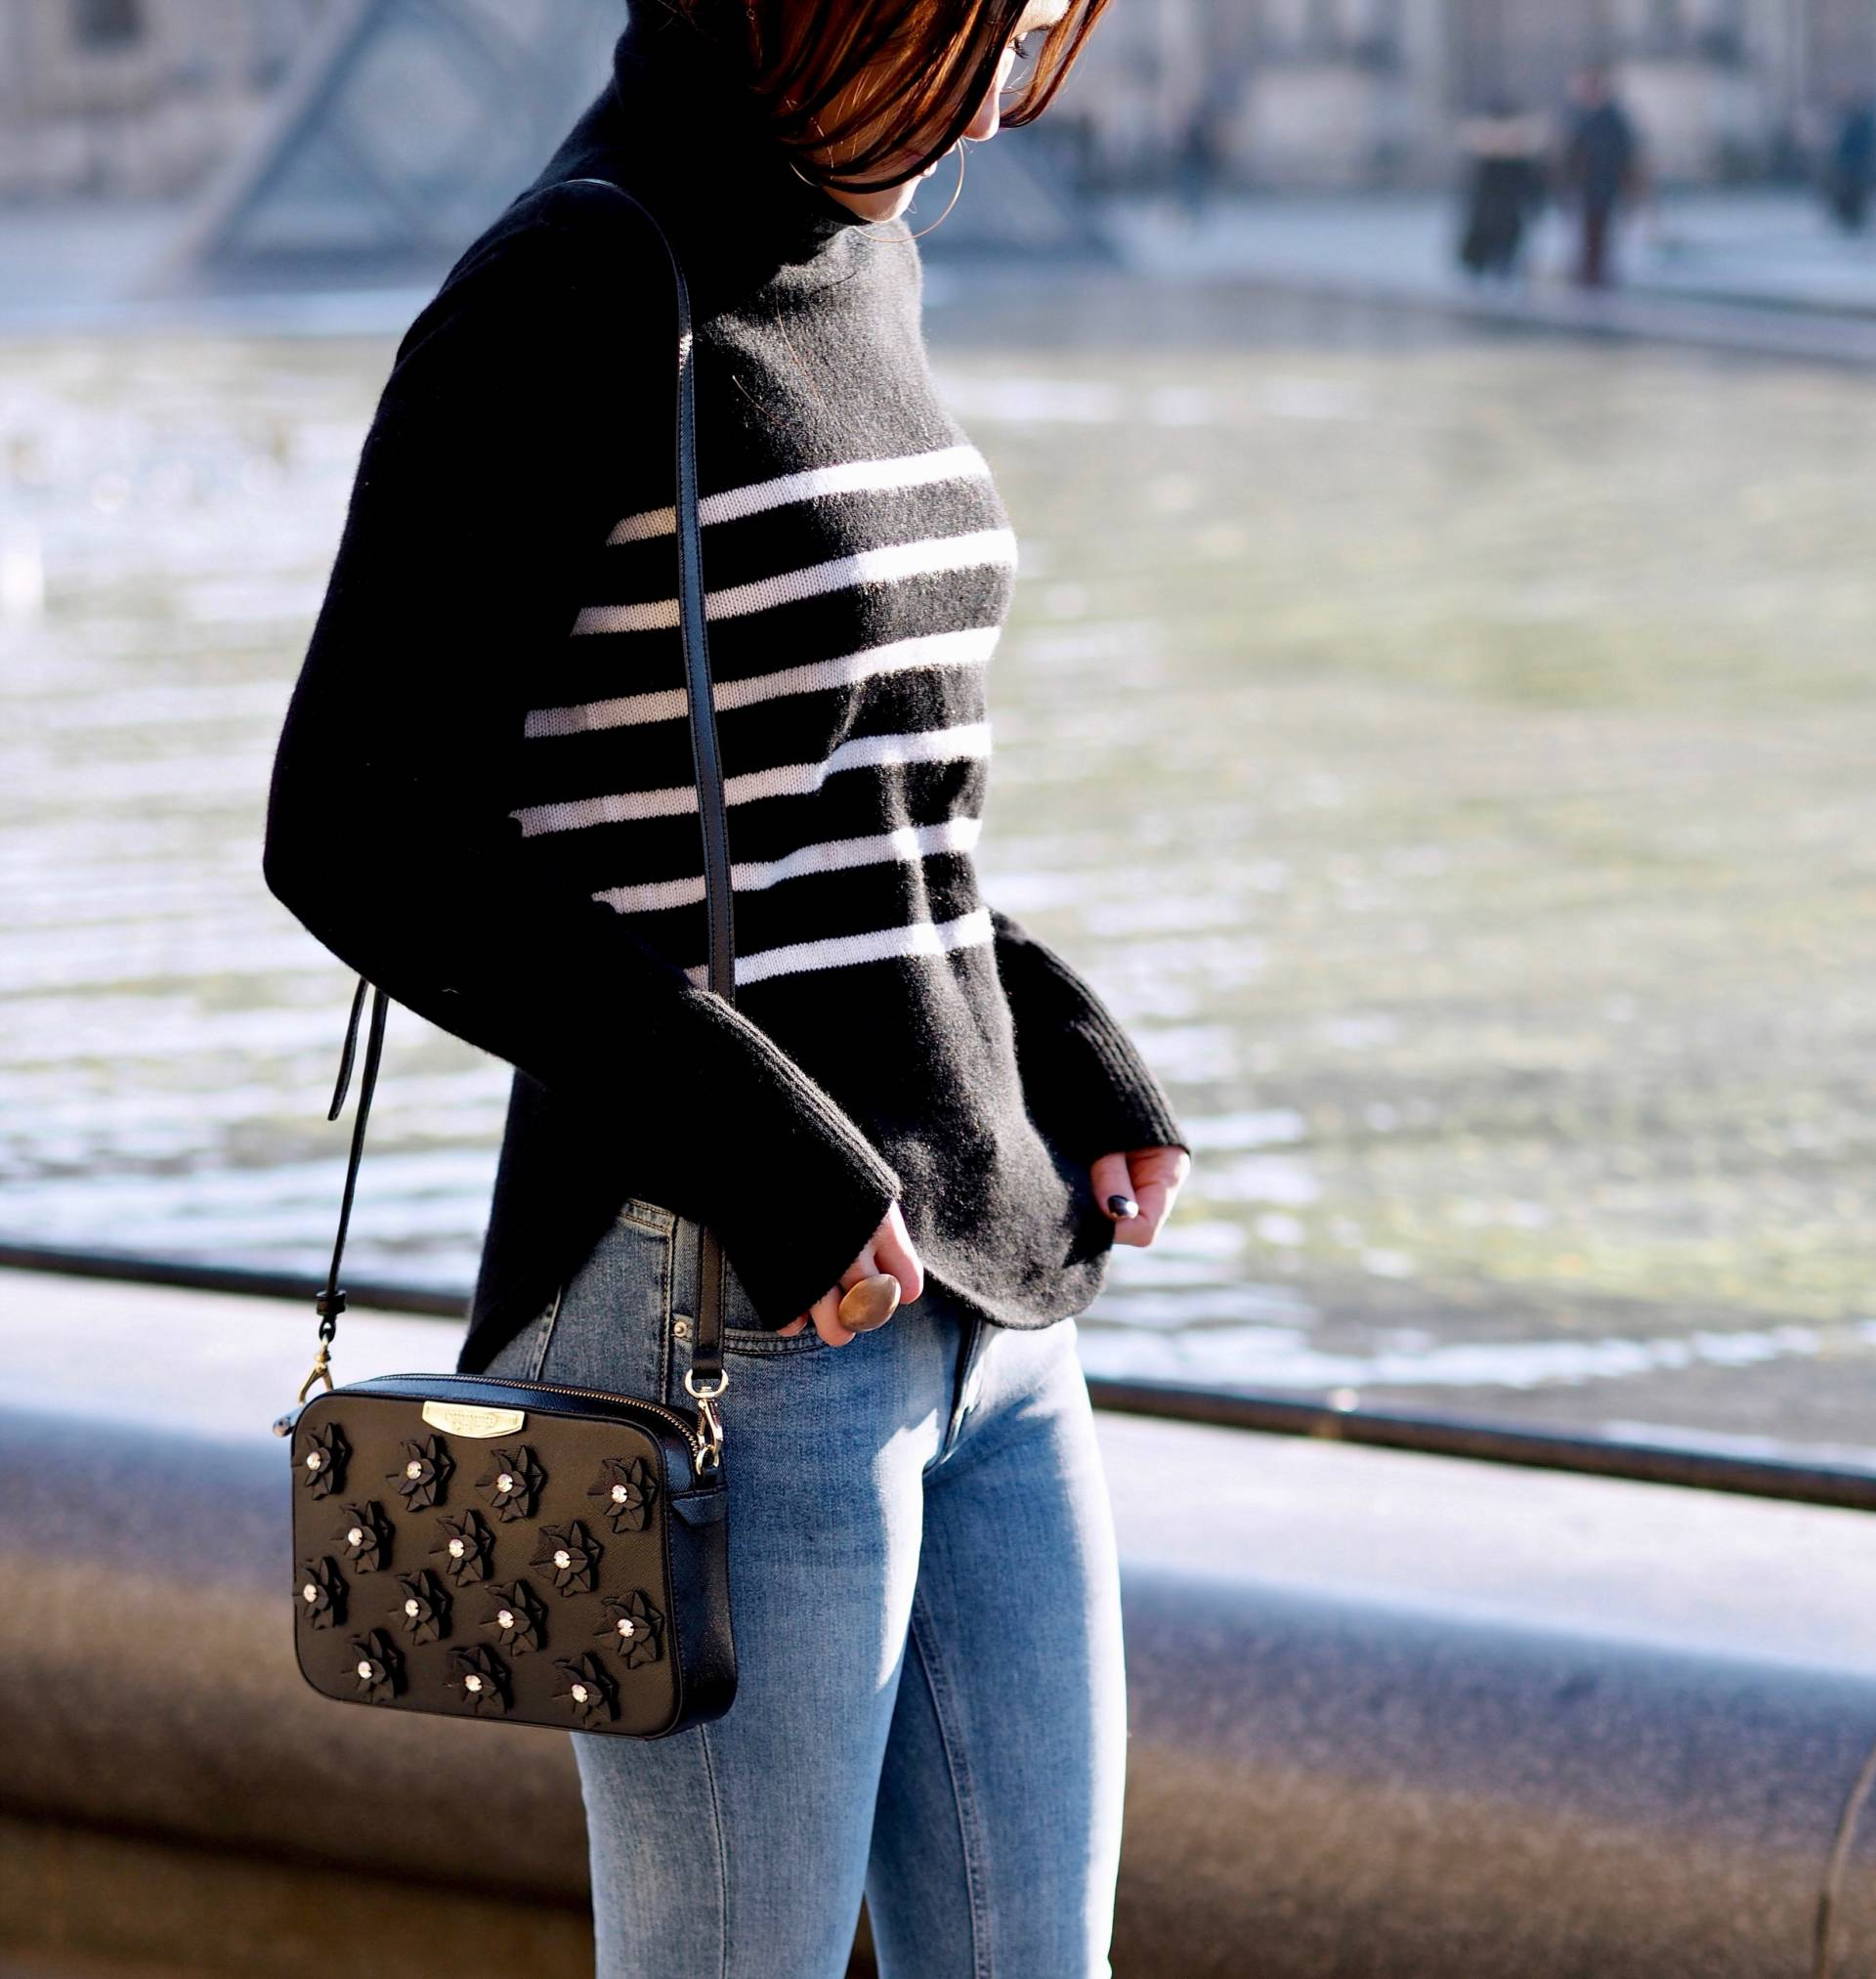 LAFOTKA FASHION BLOGGER PARIS STREET STYLE WITH JIGSAW CASHMERE JUMPER AVAILABLE AT LABEL ONLINE